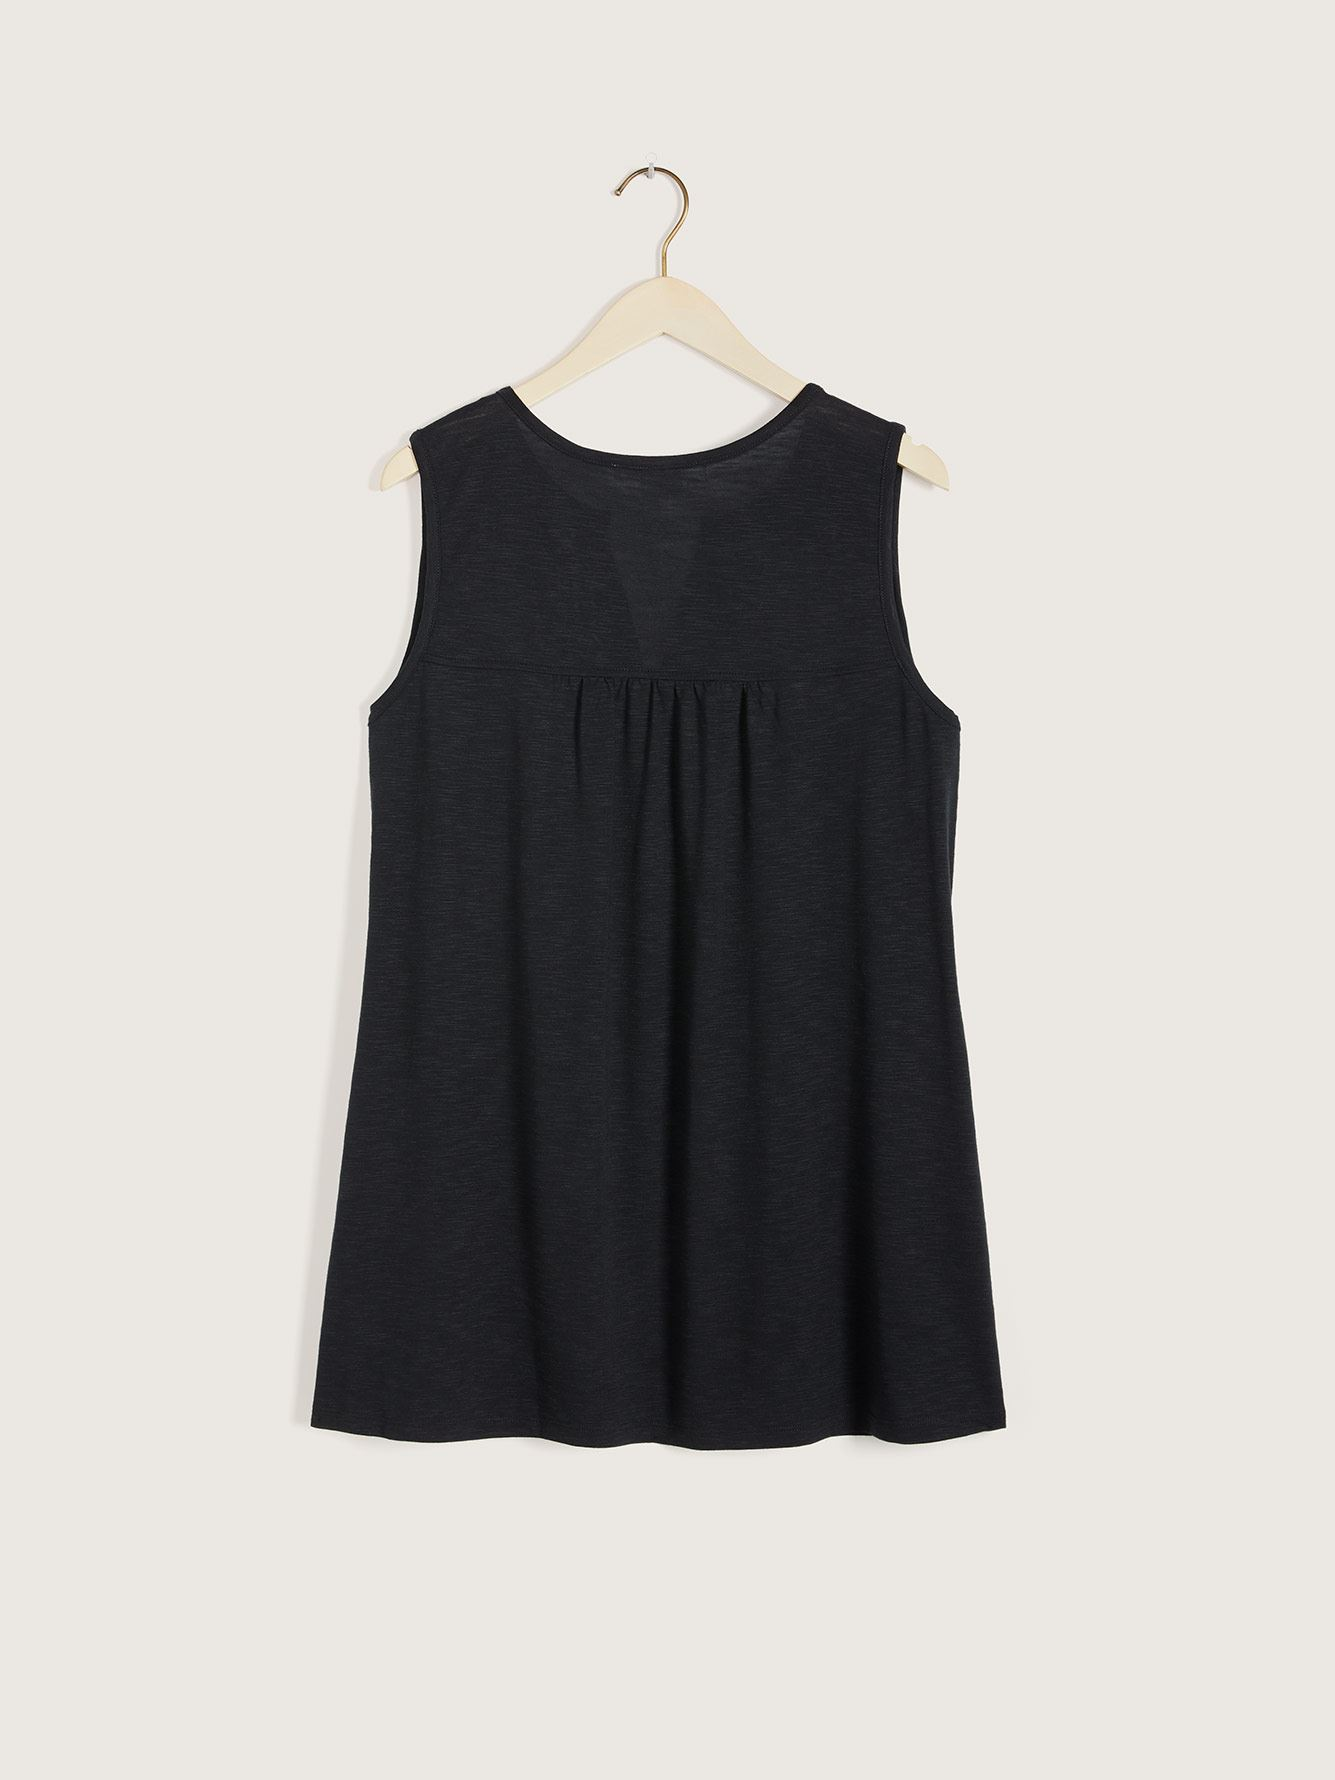 Sleeveless Top with Embroidery & Split Neckline - In Every Story